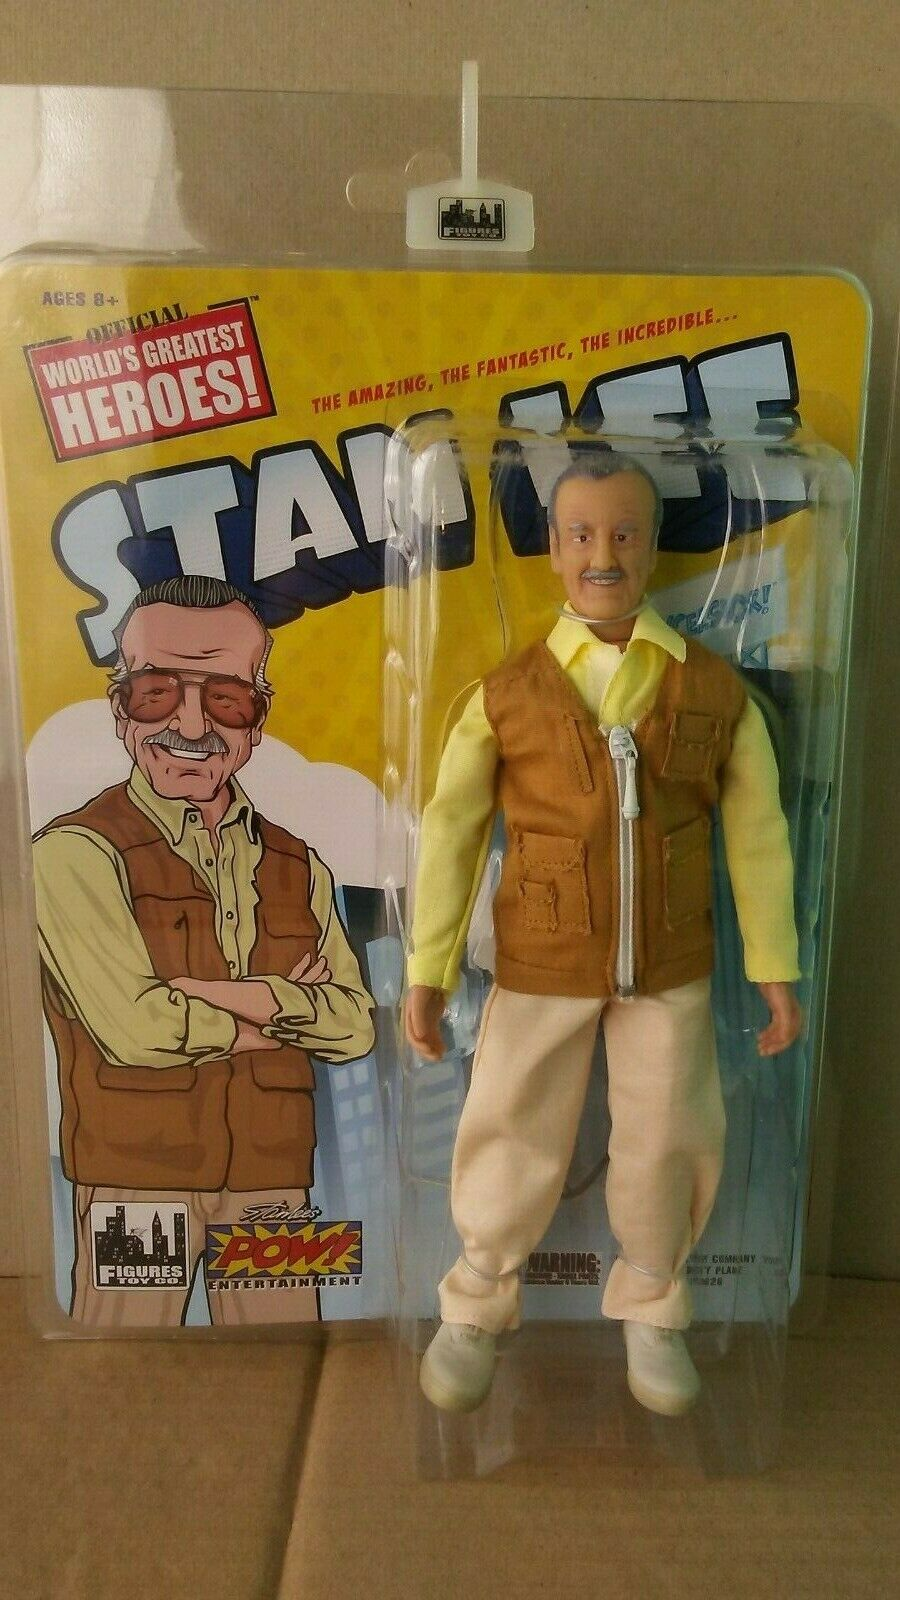 FIGURE TOYS OFFICIAL WORLD'S GREATEST HEROES RETRO STAN LEE ACTION FIGURE